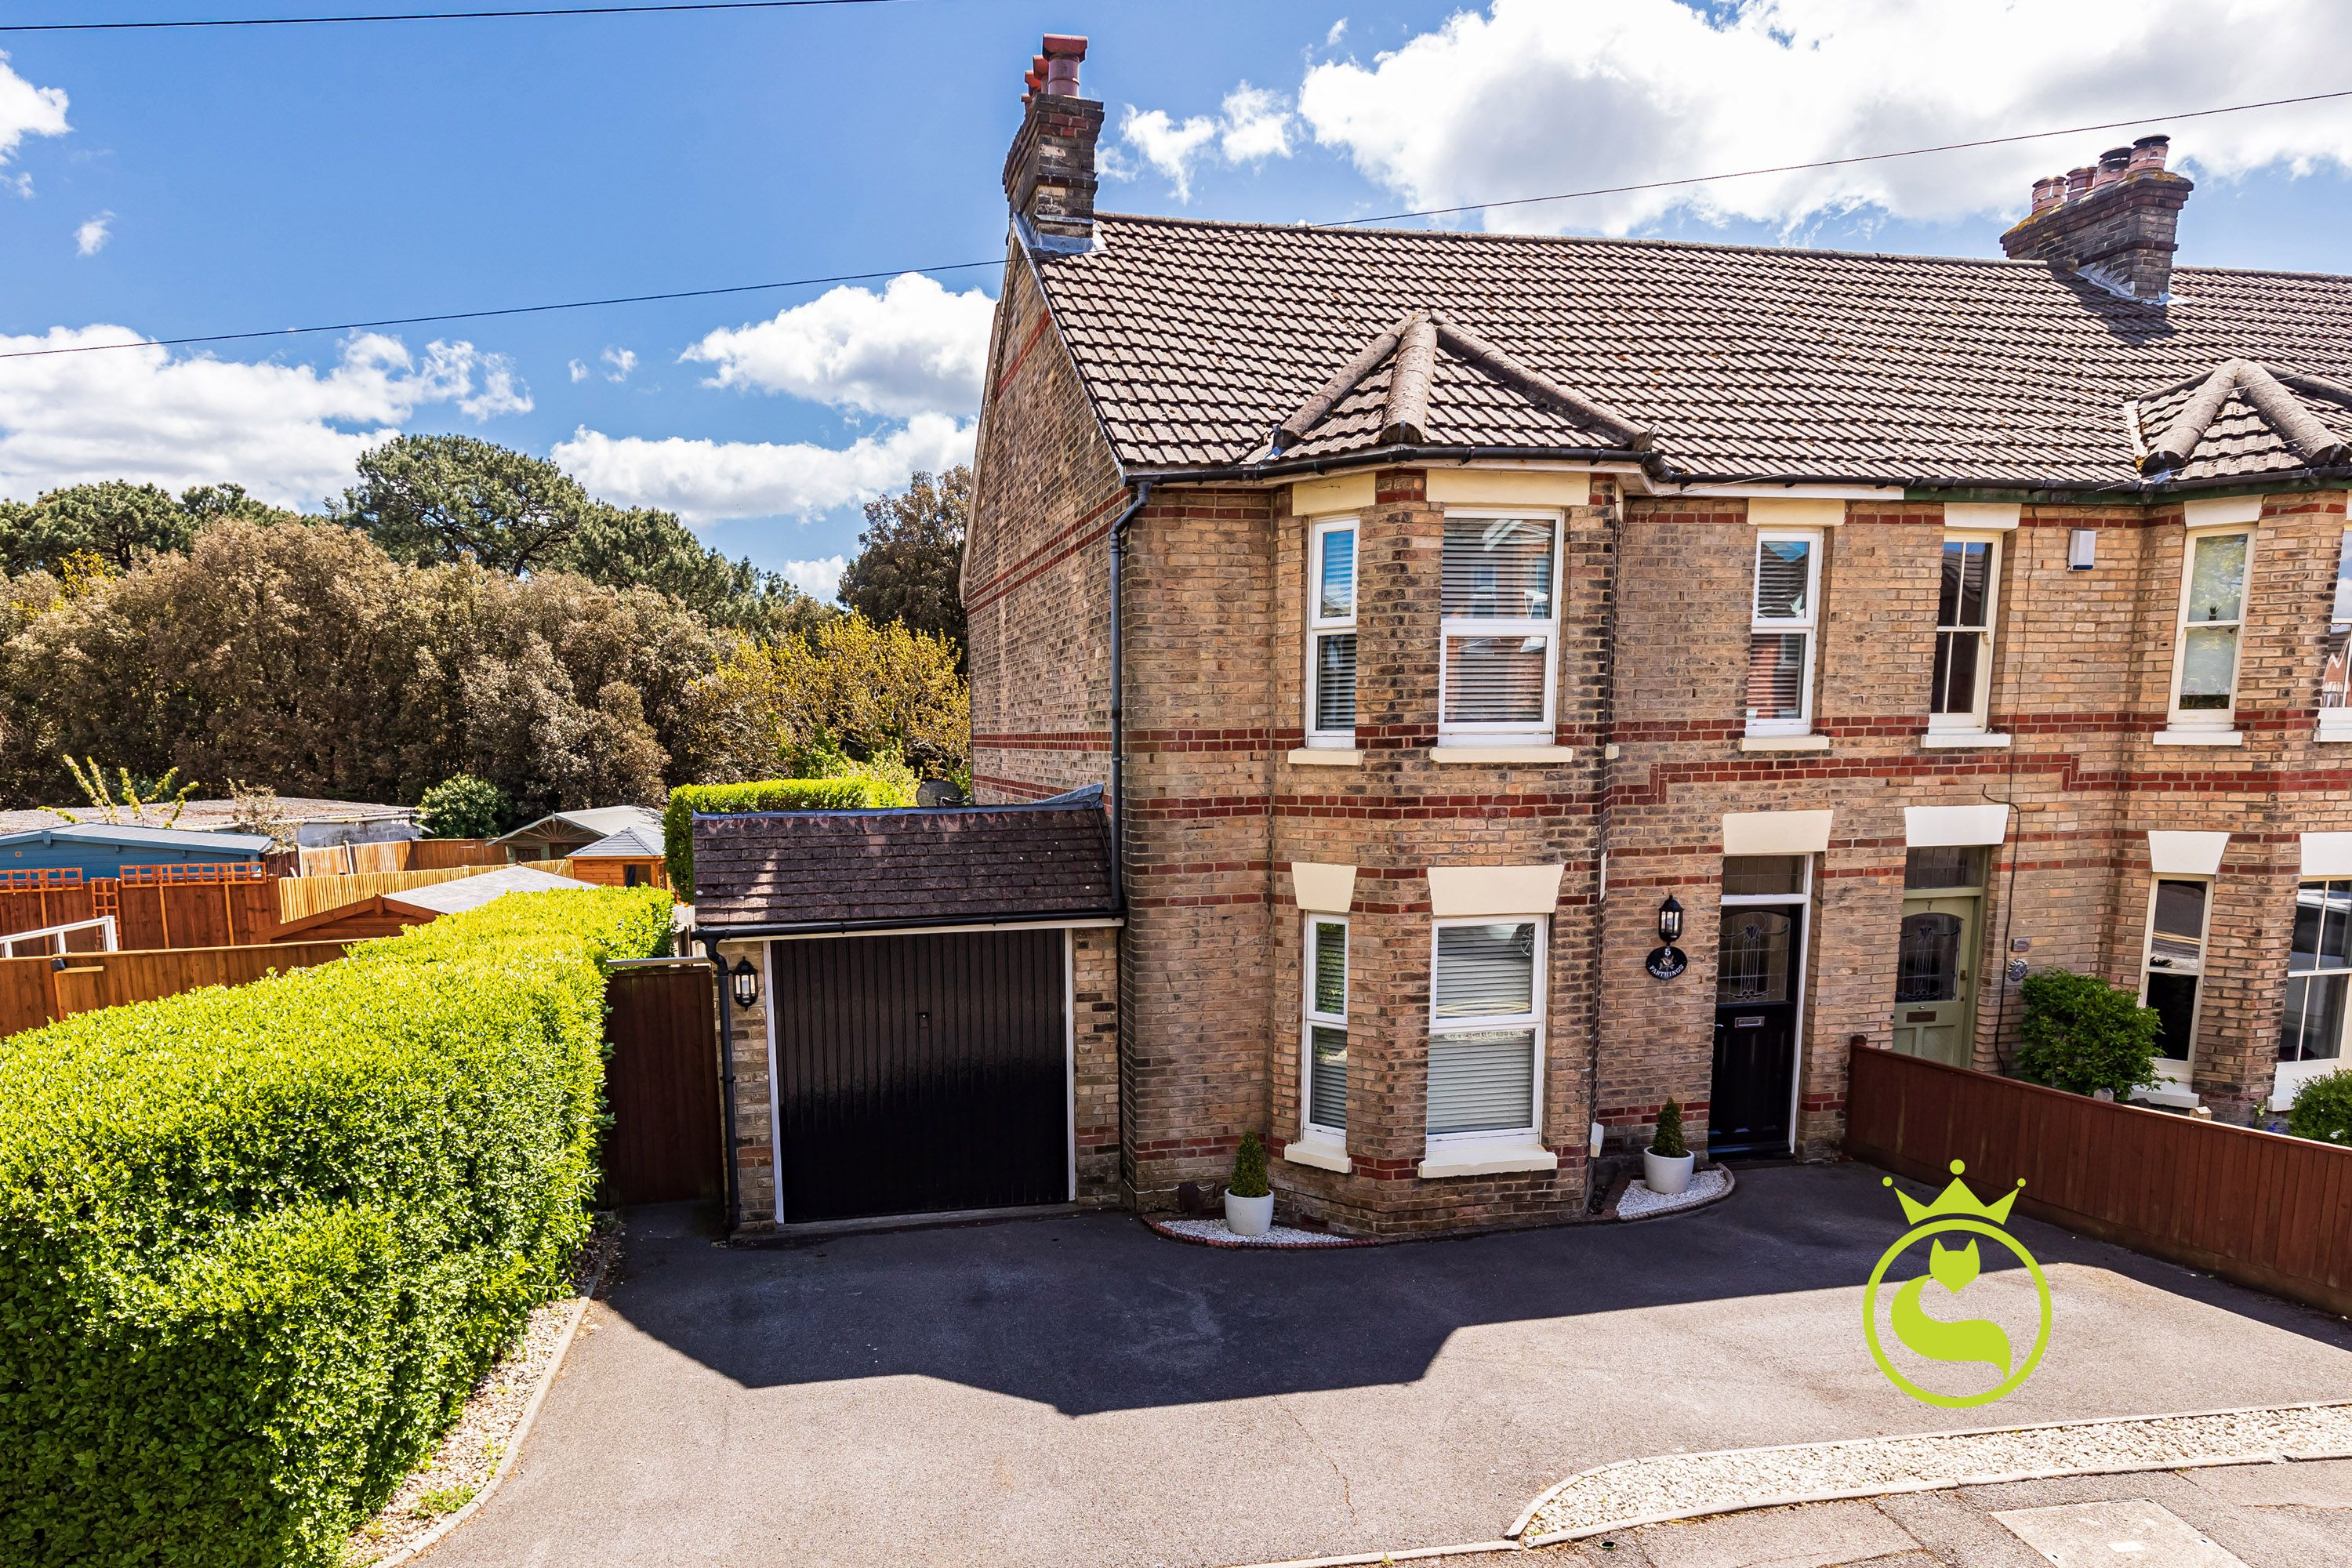 A charming and characterful three bedroom semi detached Victorian house benefiting from garage, driveway and a large garden. The property is immaculately presented and viewing is a must!